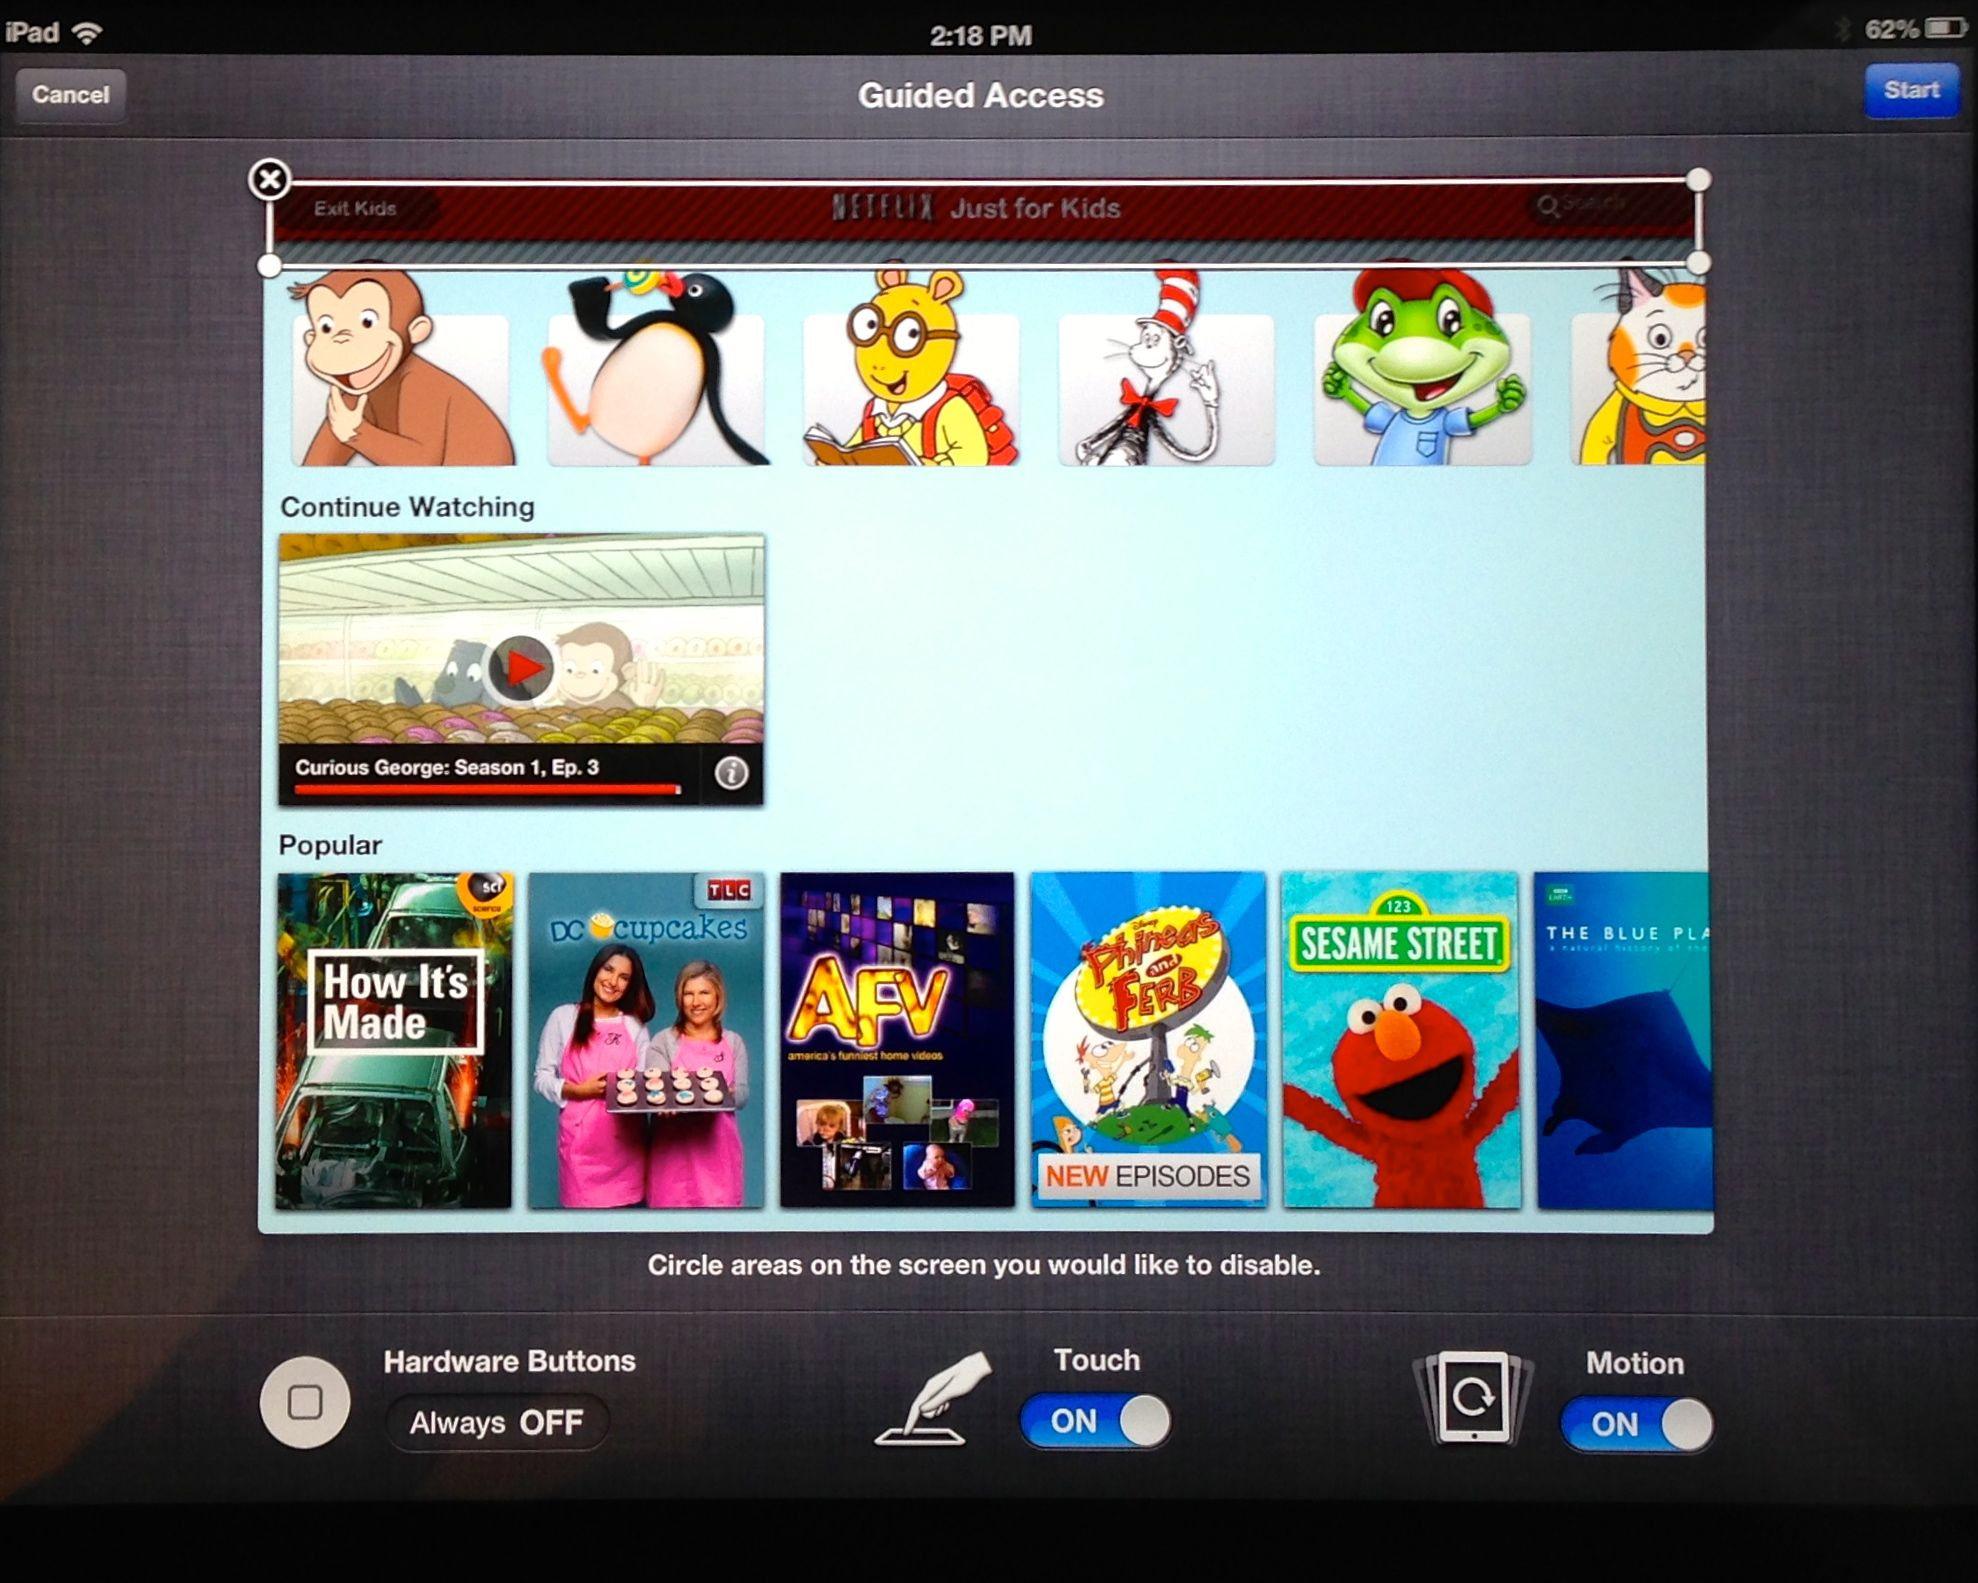 How to Lock the iPad to a Single App for Kid Mode